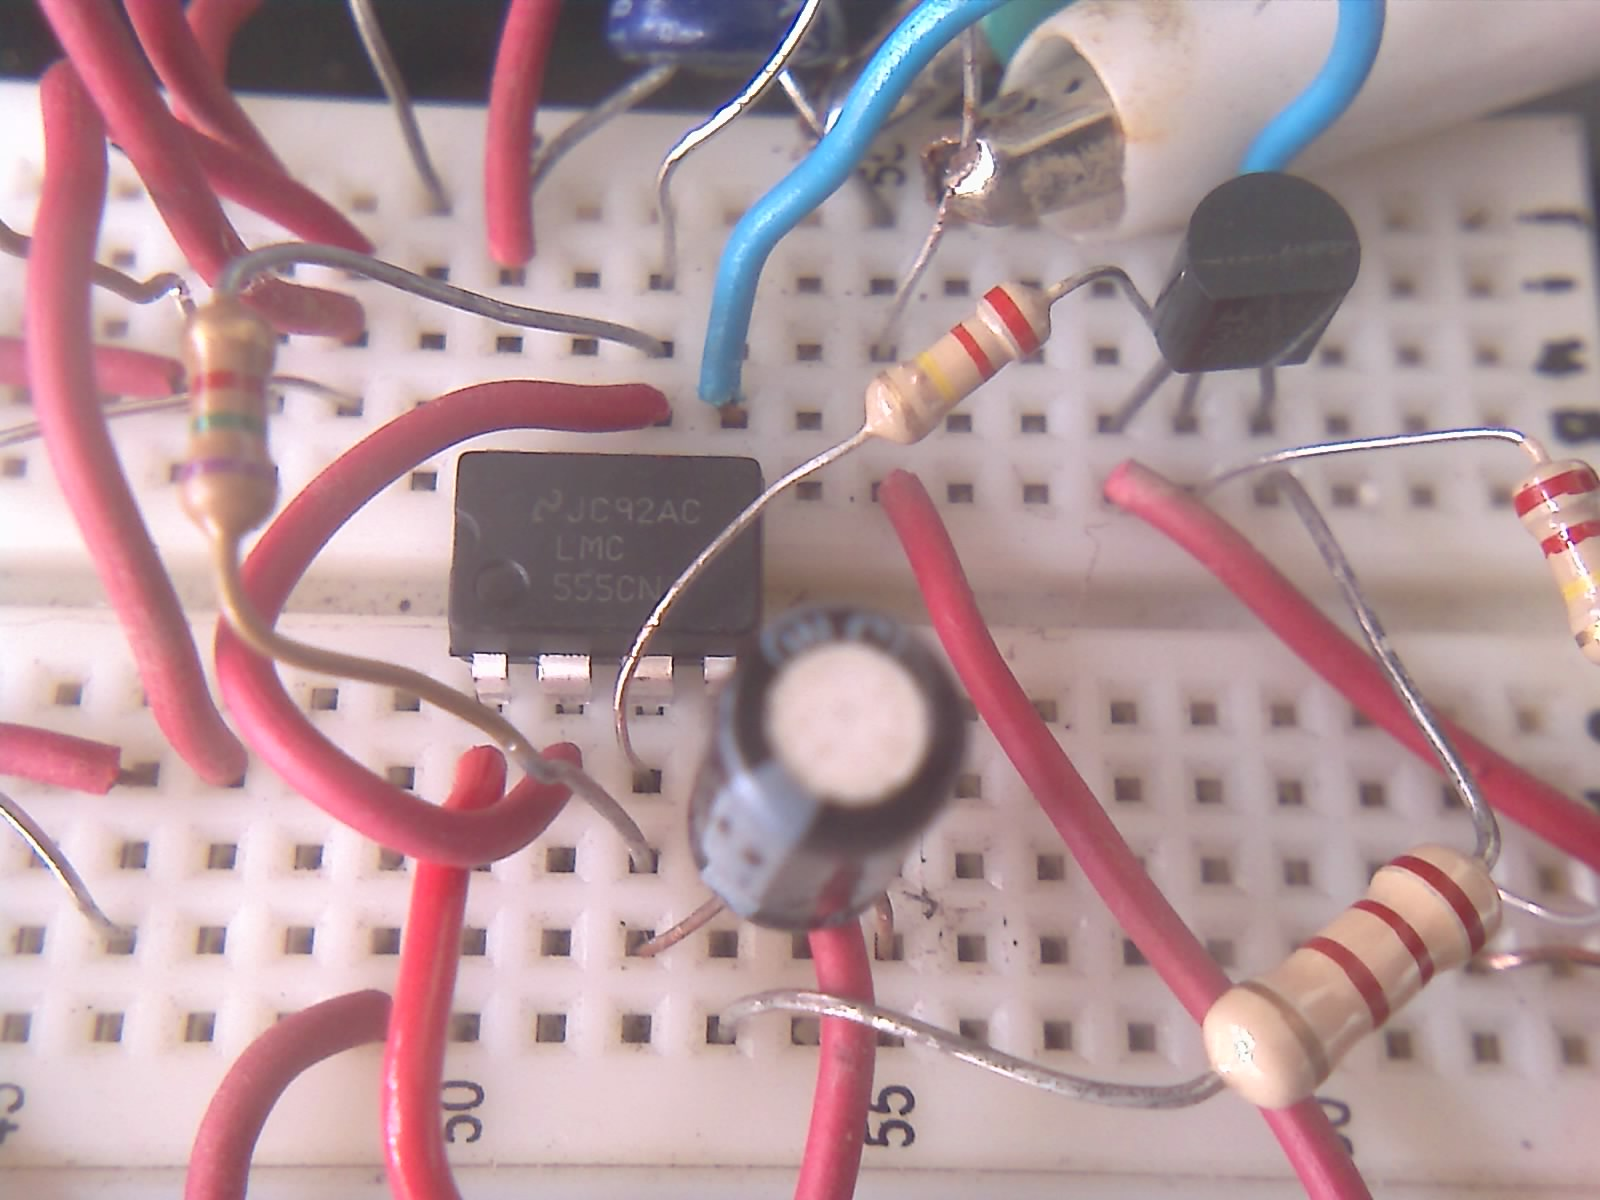 Class D Amp Made Easy With 555 Timer Ic Geek Circuits Simple Audio Preamplifier Circuit Using Single Transistor 2n3904 Added Fig